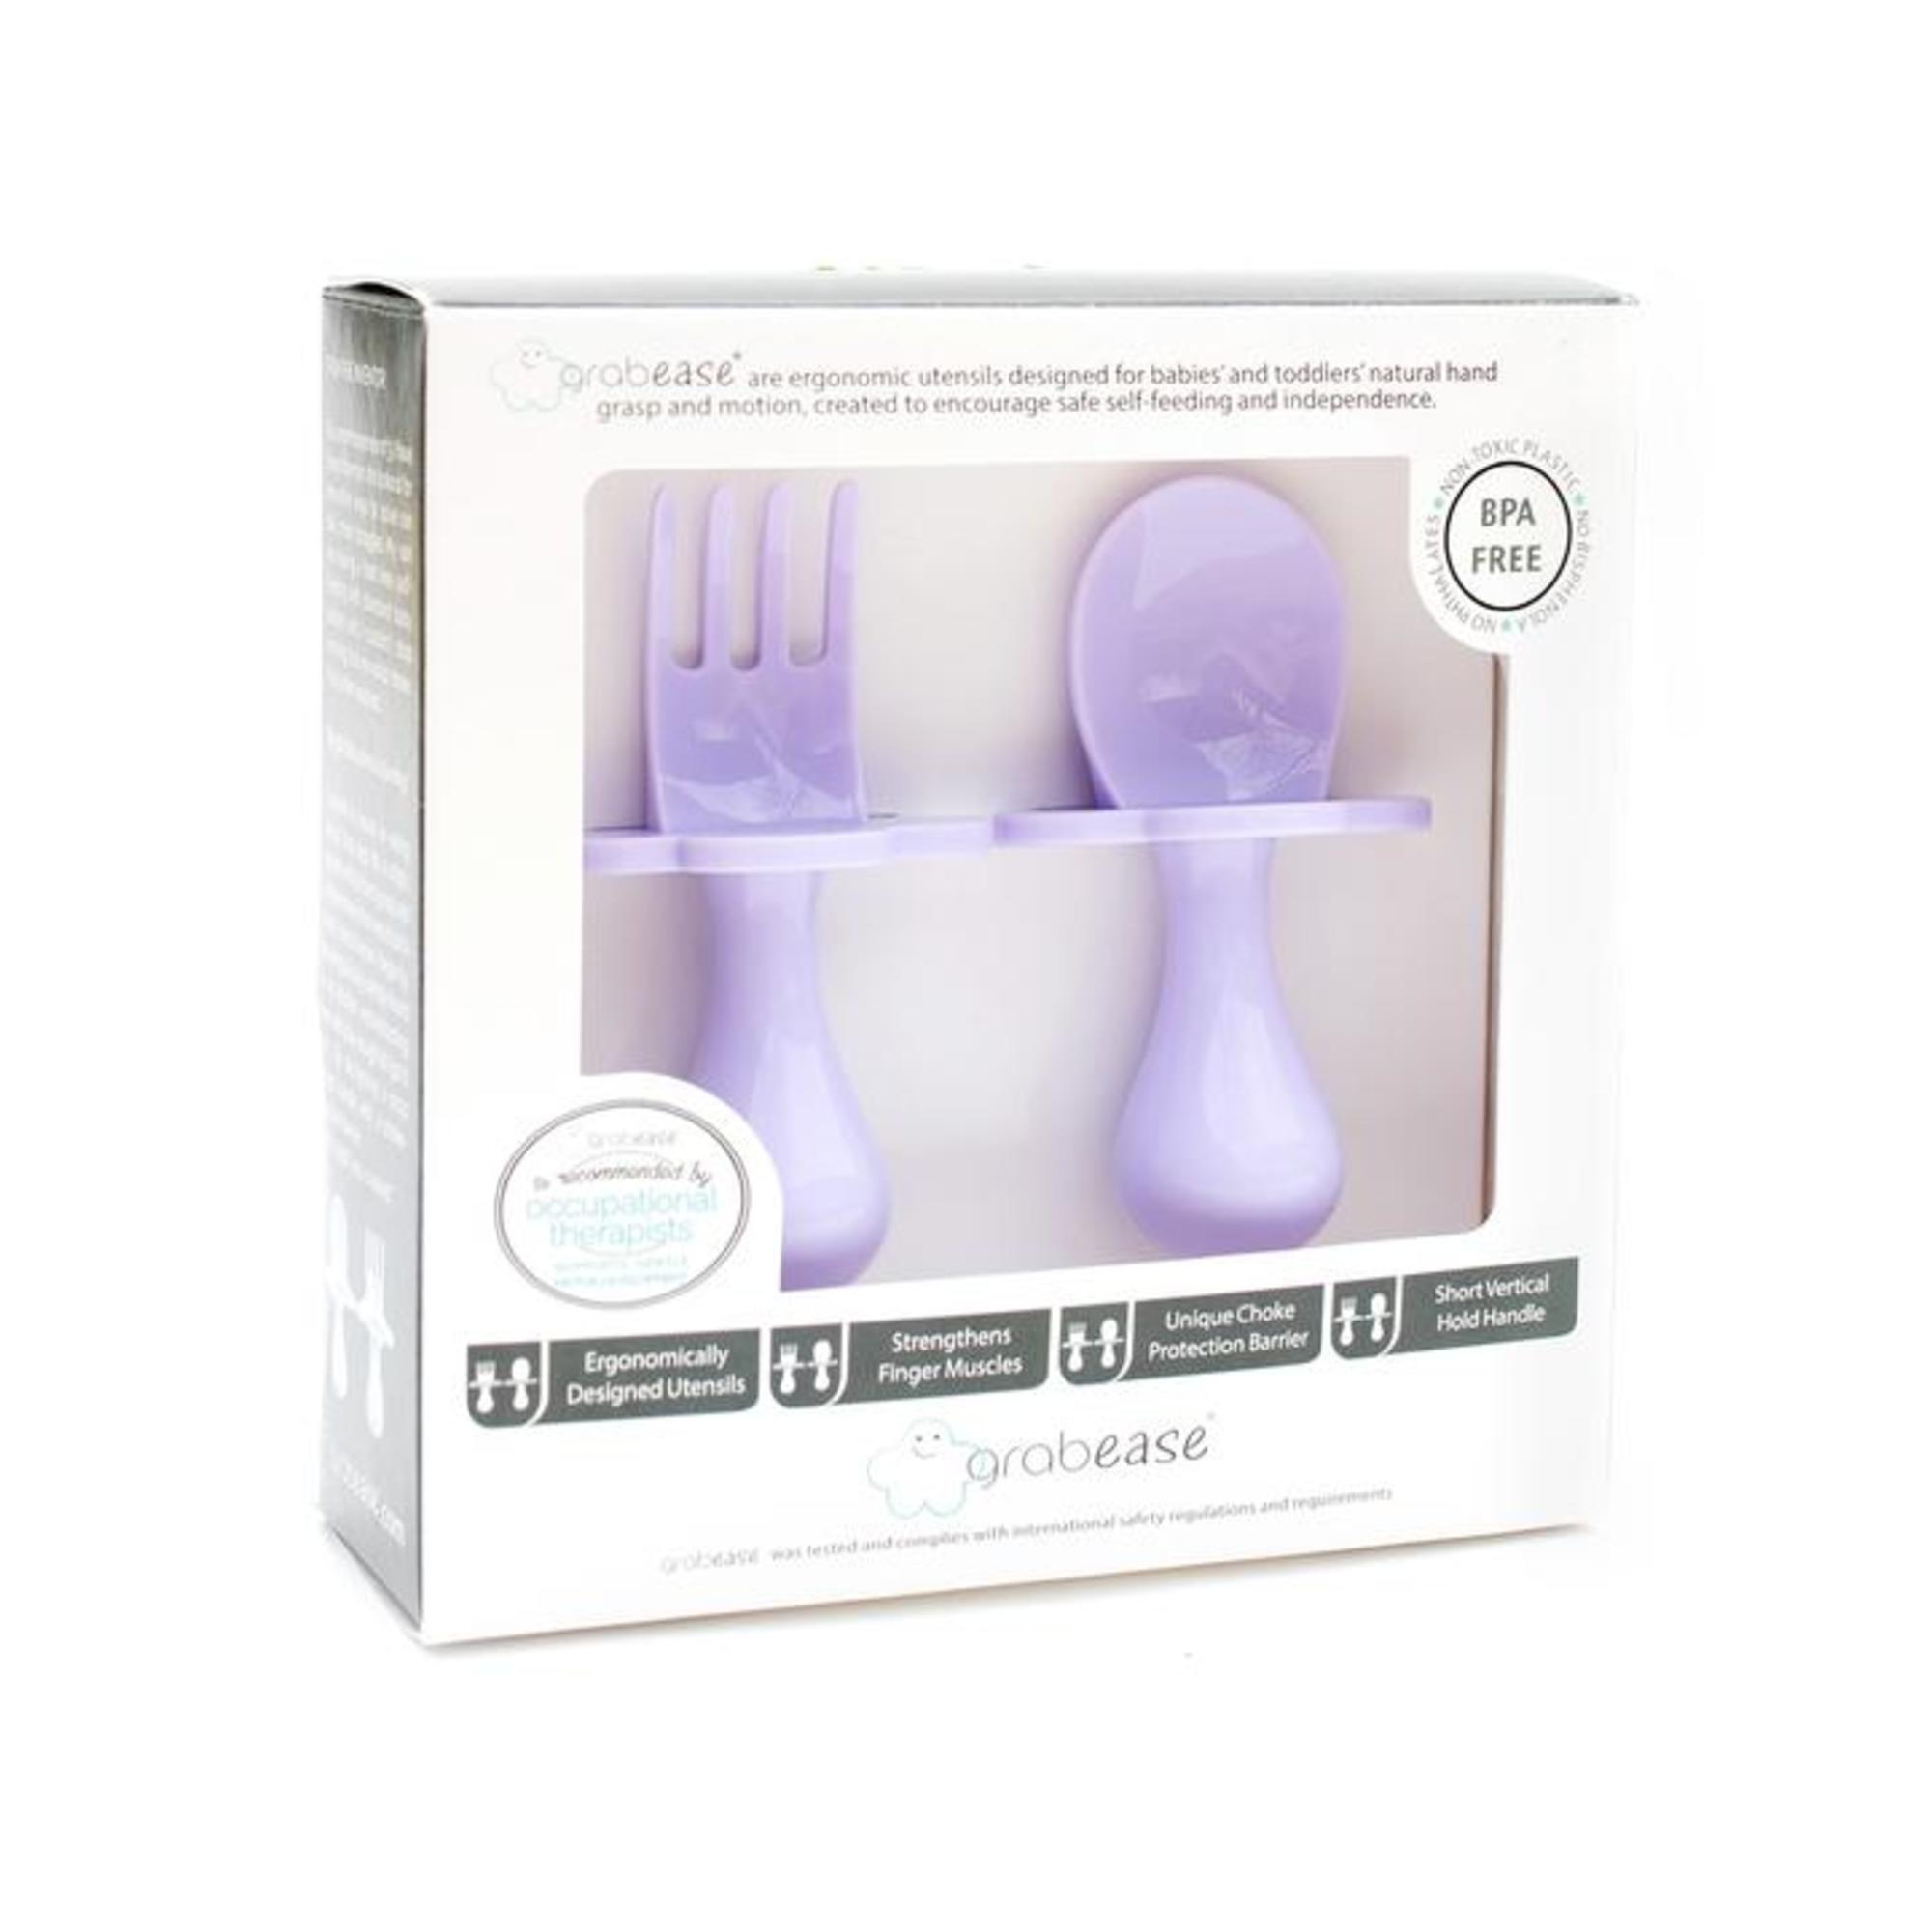 Grabease first self-feeding utensils packaging